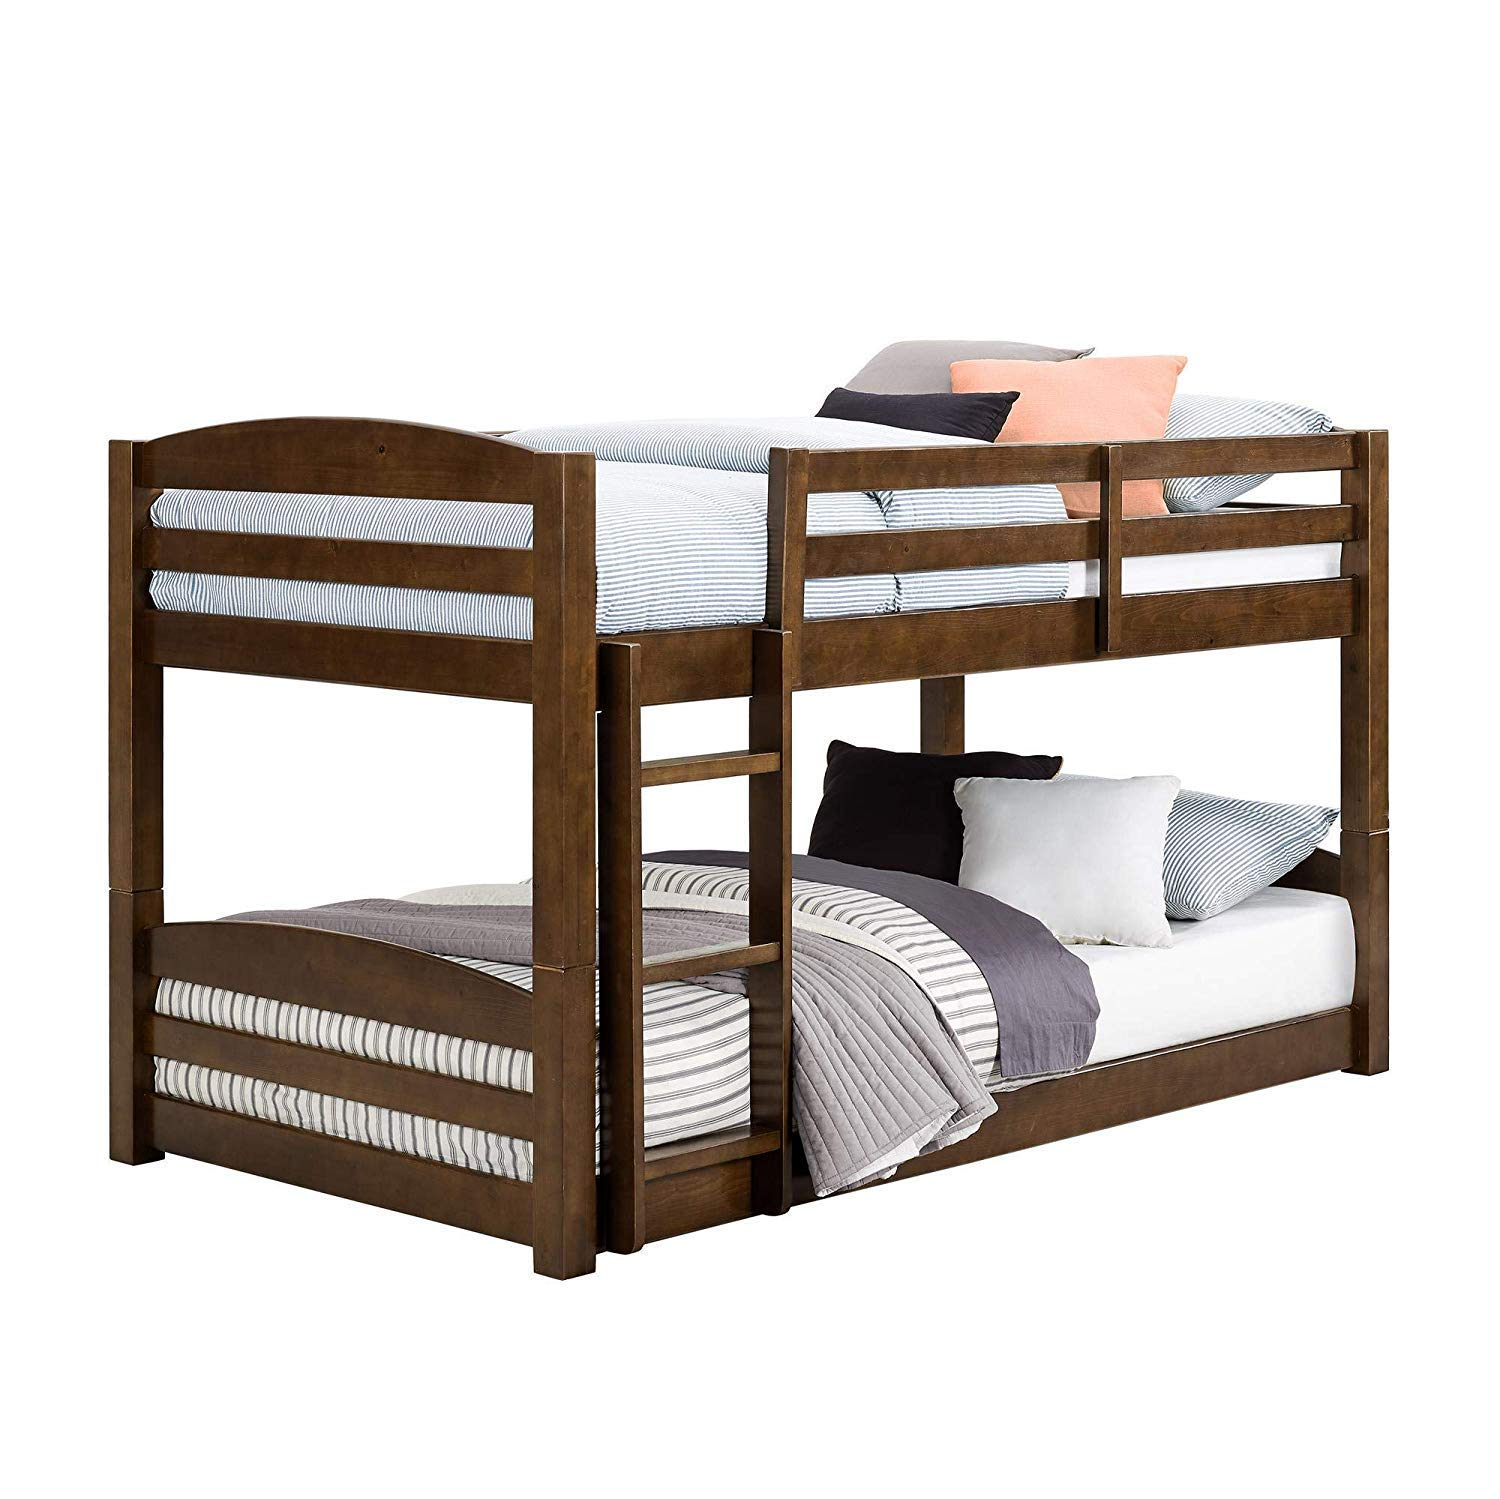 Kishoor Shipry Bunk Bed for Children Furniture